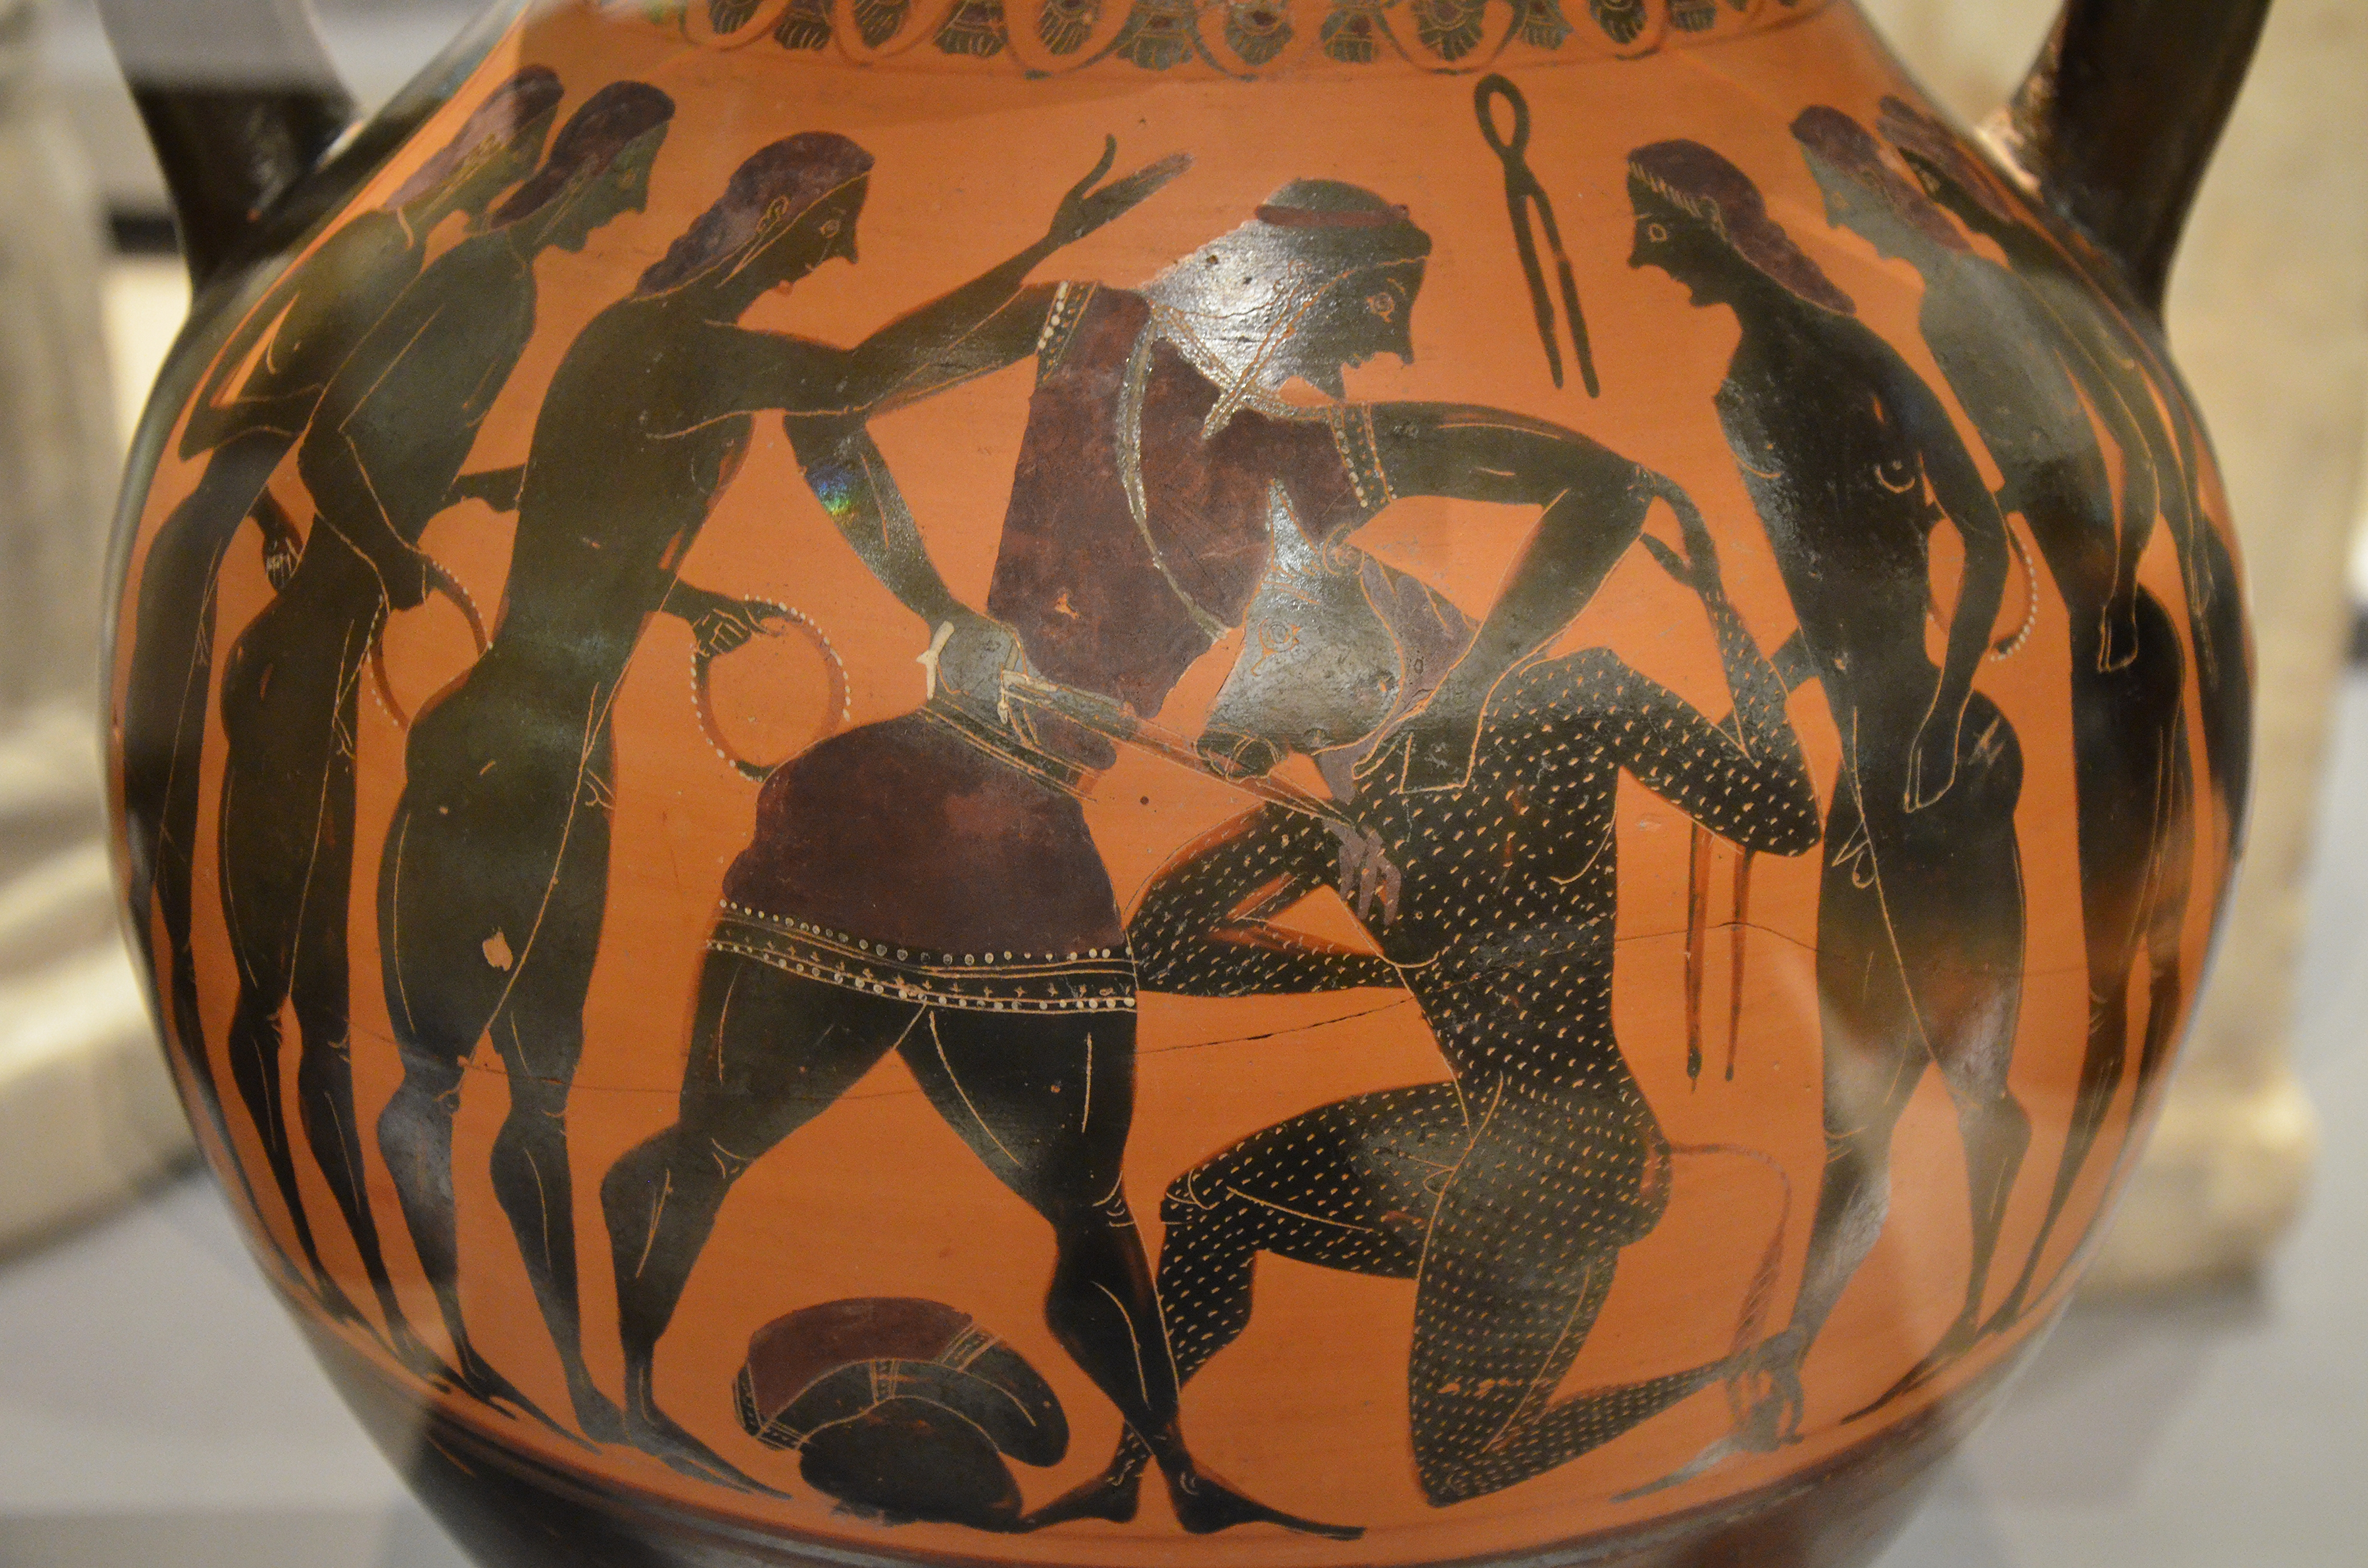 The history of ancient greece podcast december 2016 photovase painting of theseus slaying the minotaur reviewsmspy